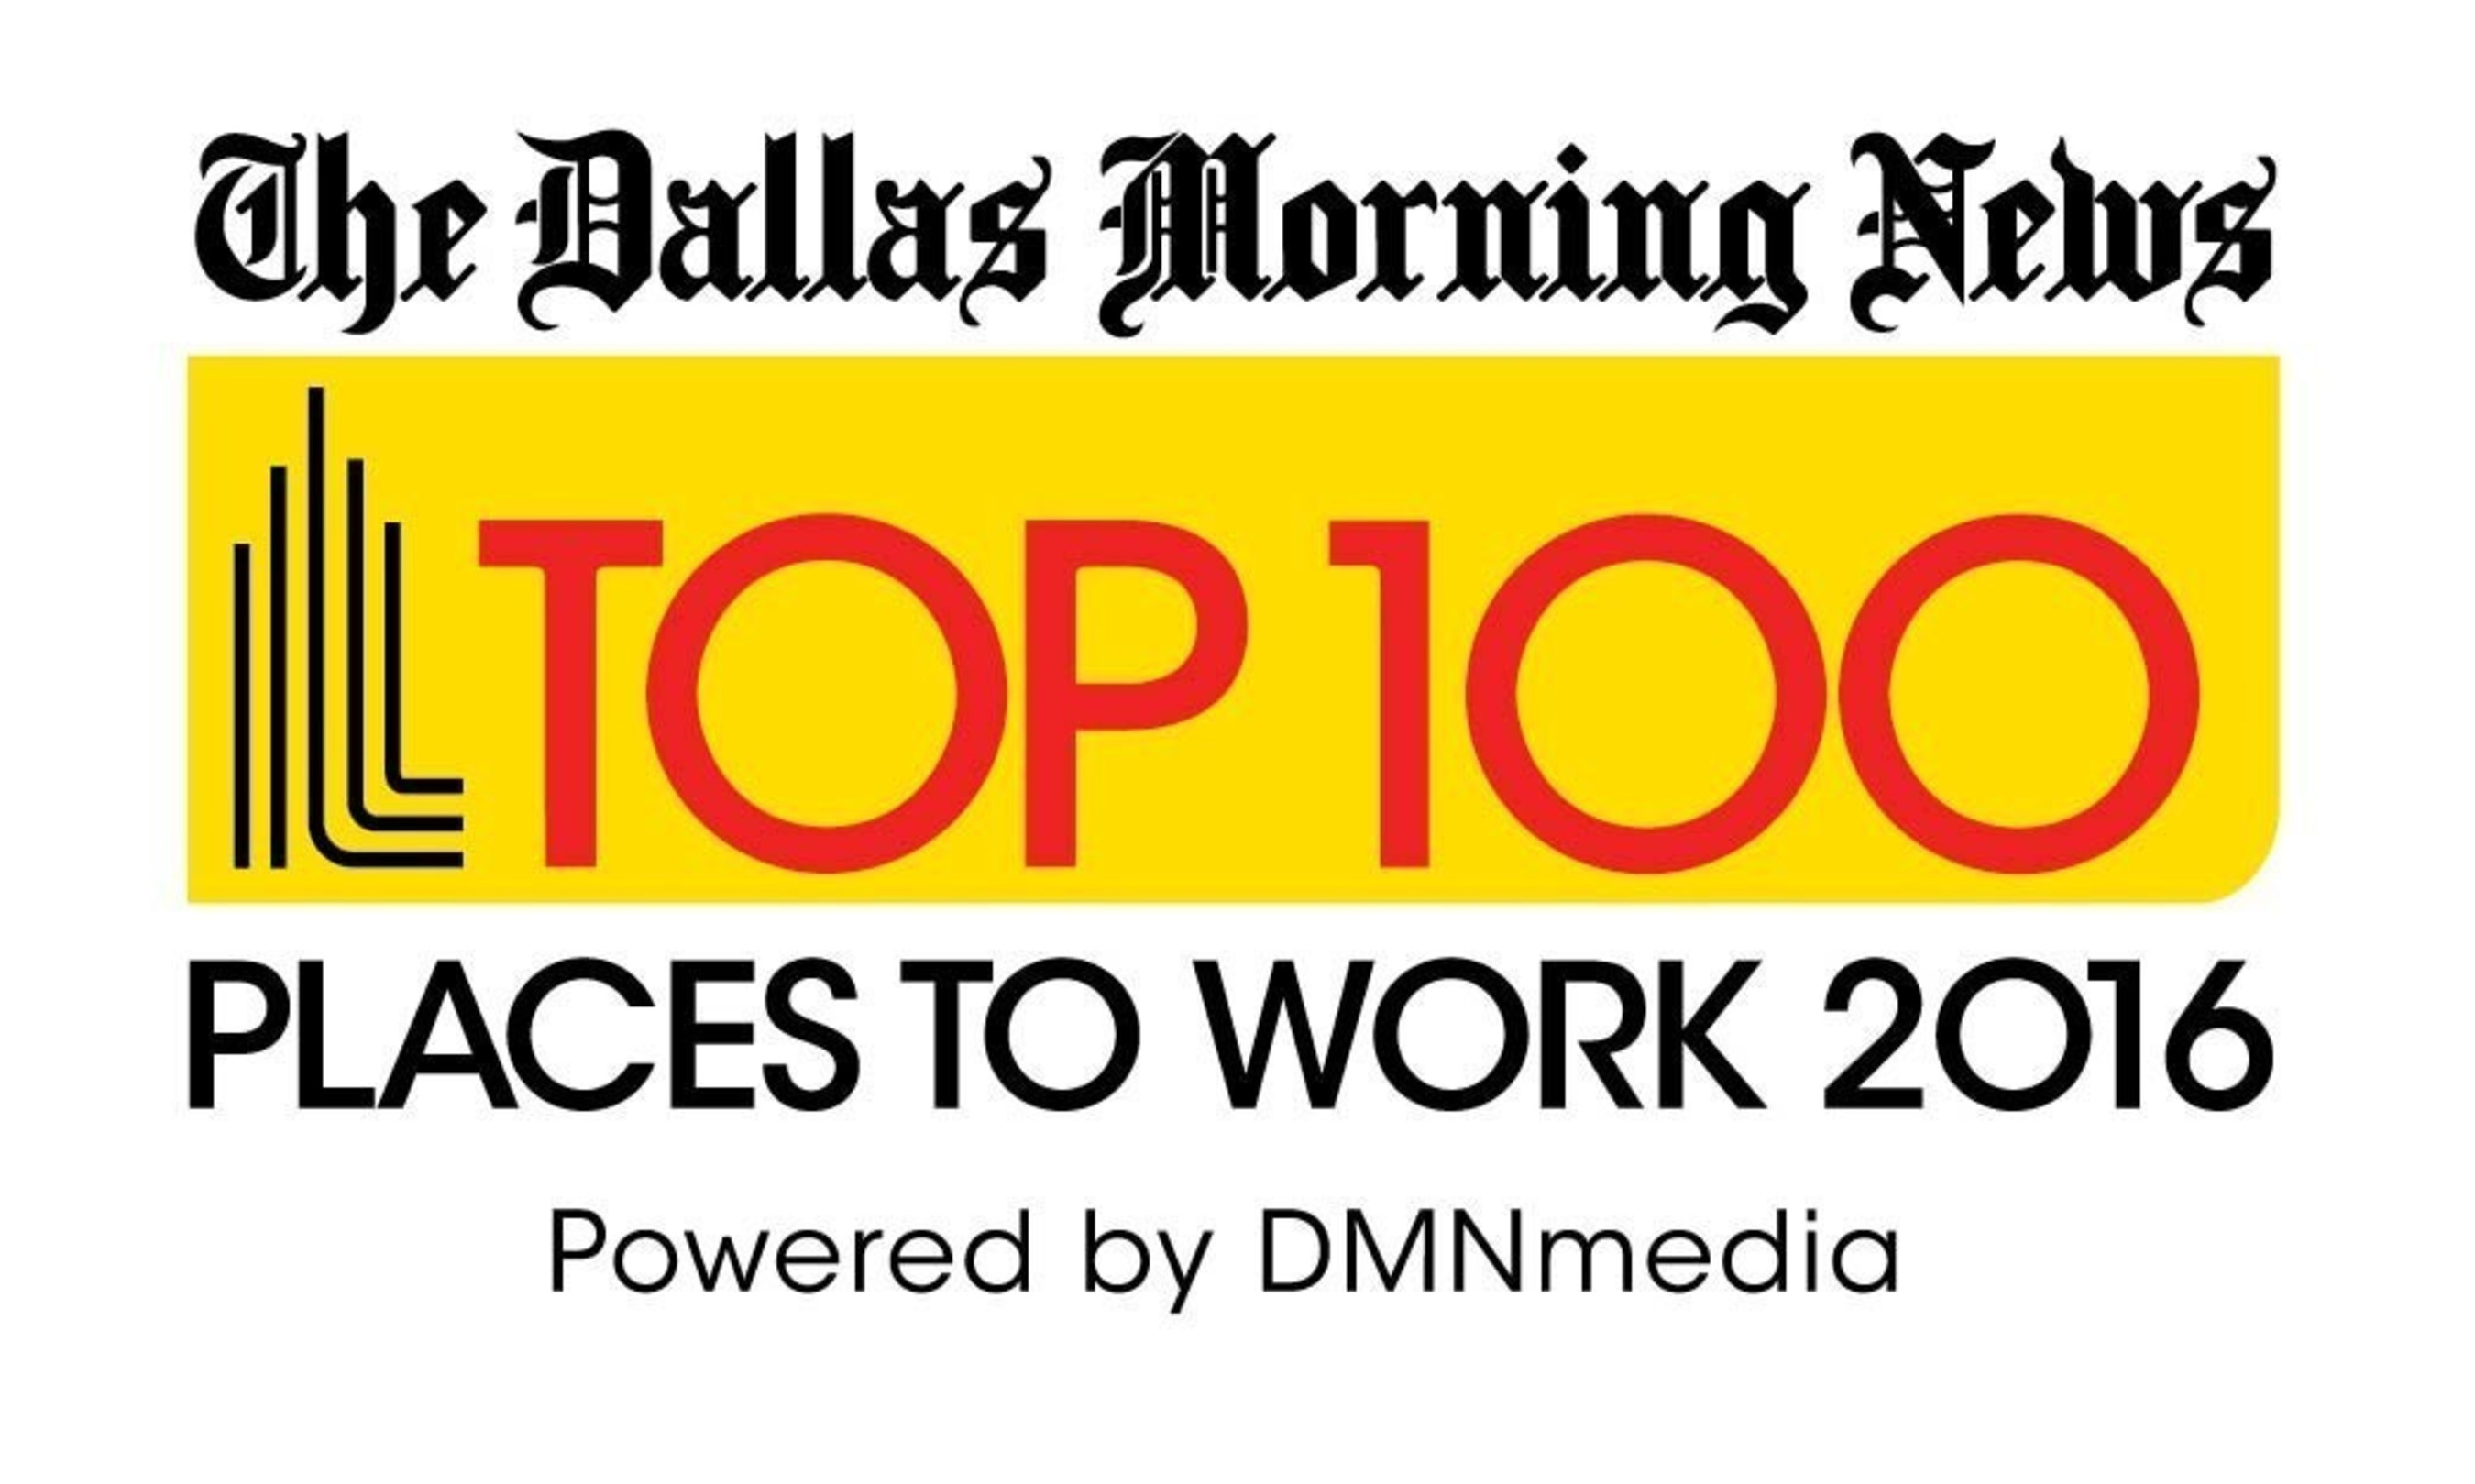 TXU Energy landed on the Dallas Morning News' Top 100 Places to Work for the third year in a row.